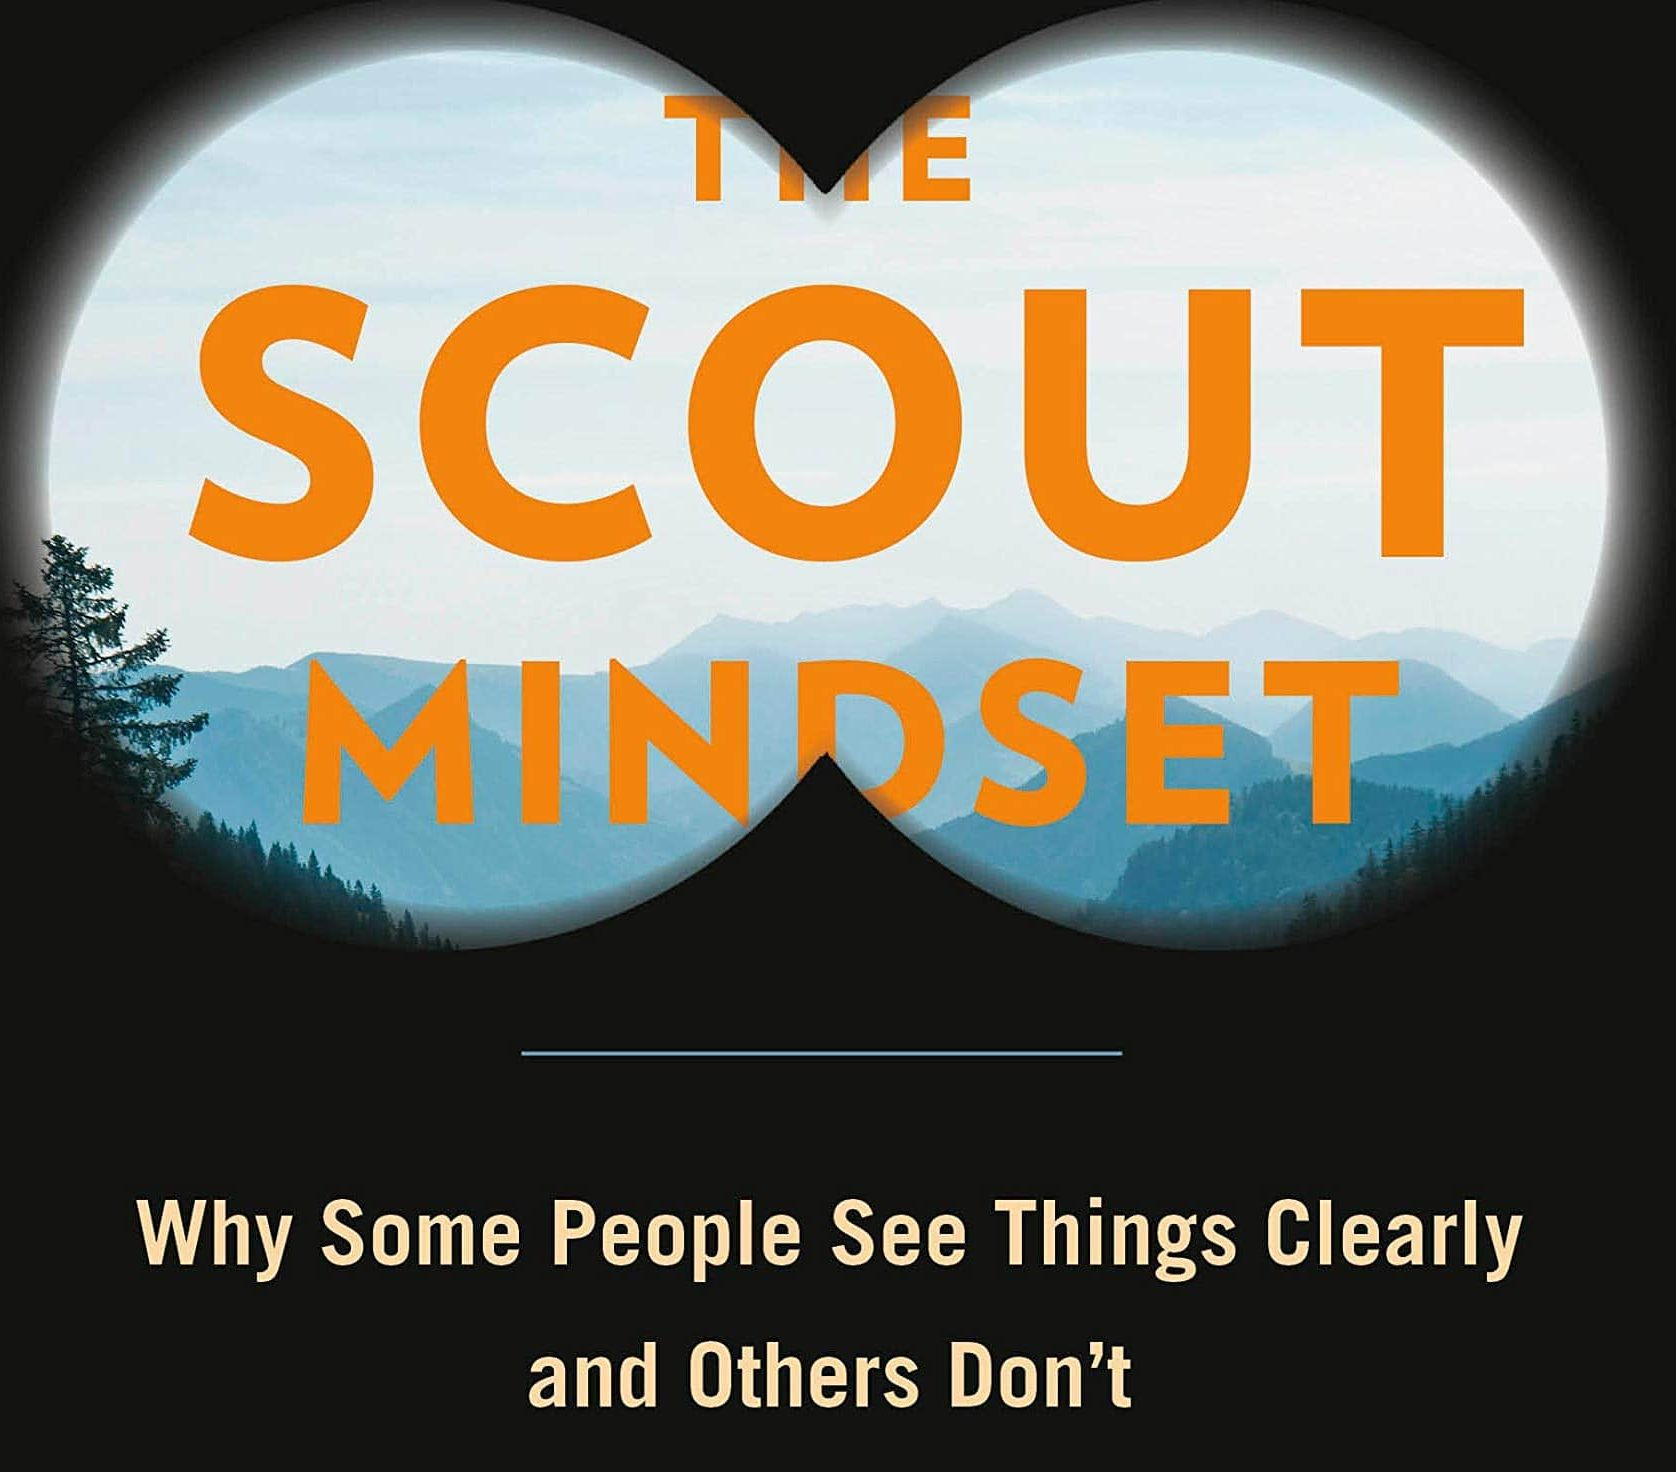 'The Scout Mindset' teaches us how to not fool ourselves